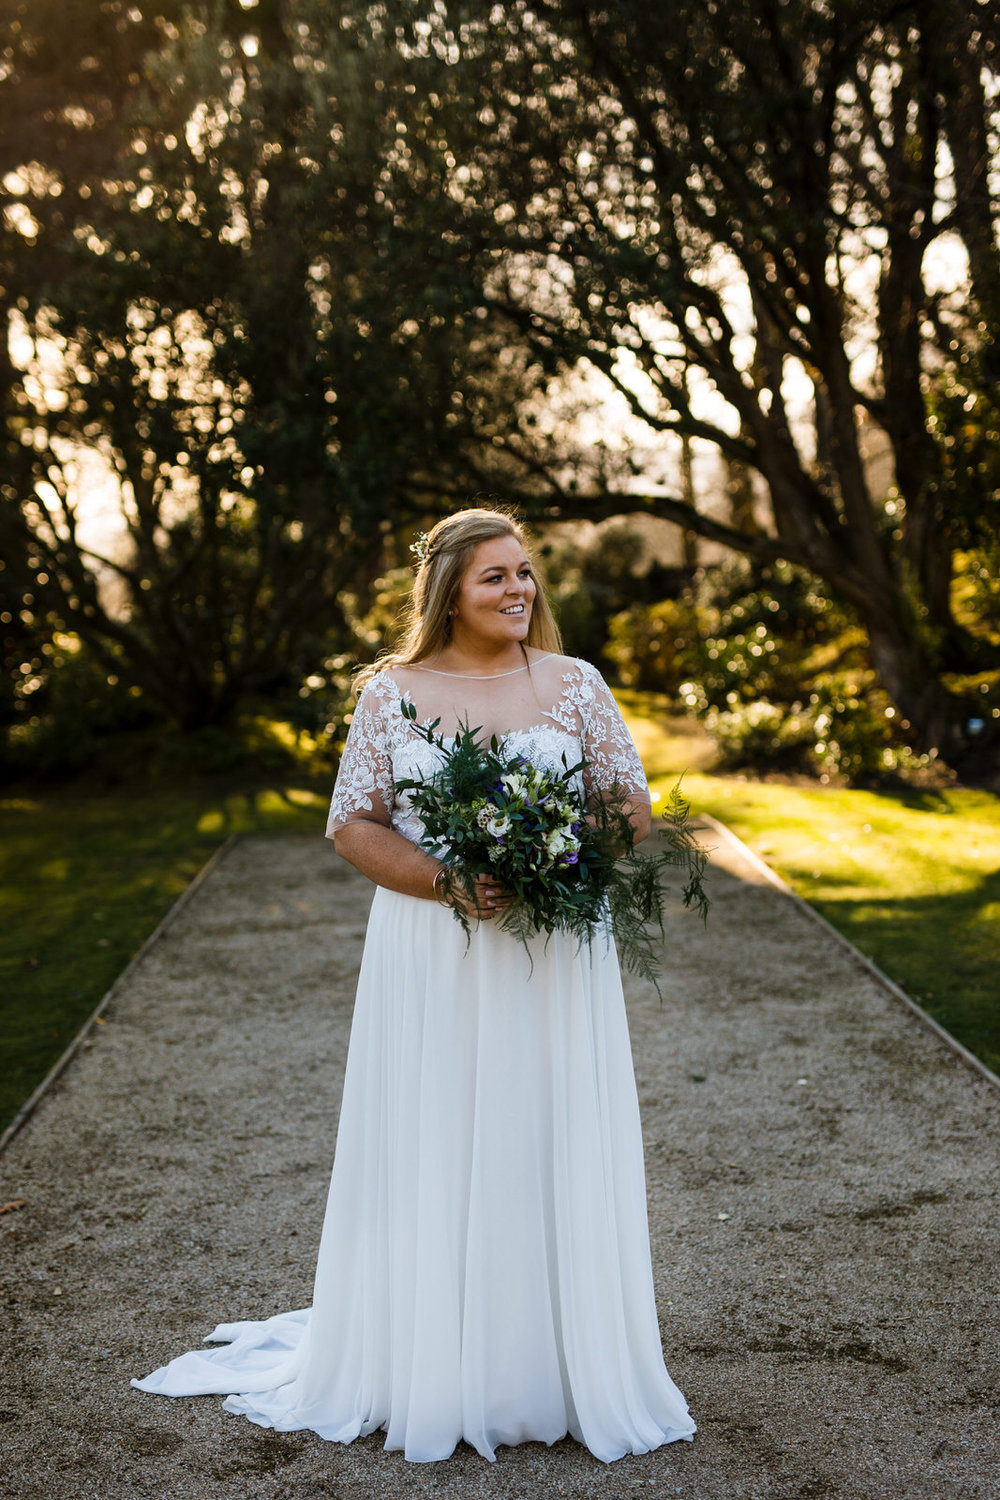 Tinakilly-country-house-wedding-photography-roger-kenny-portraitroom-wicklow-097.jpg